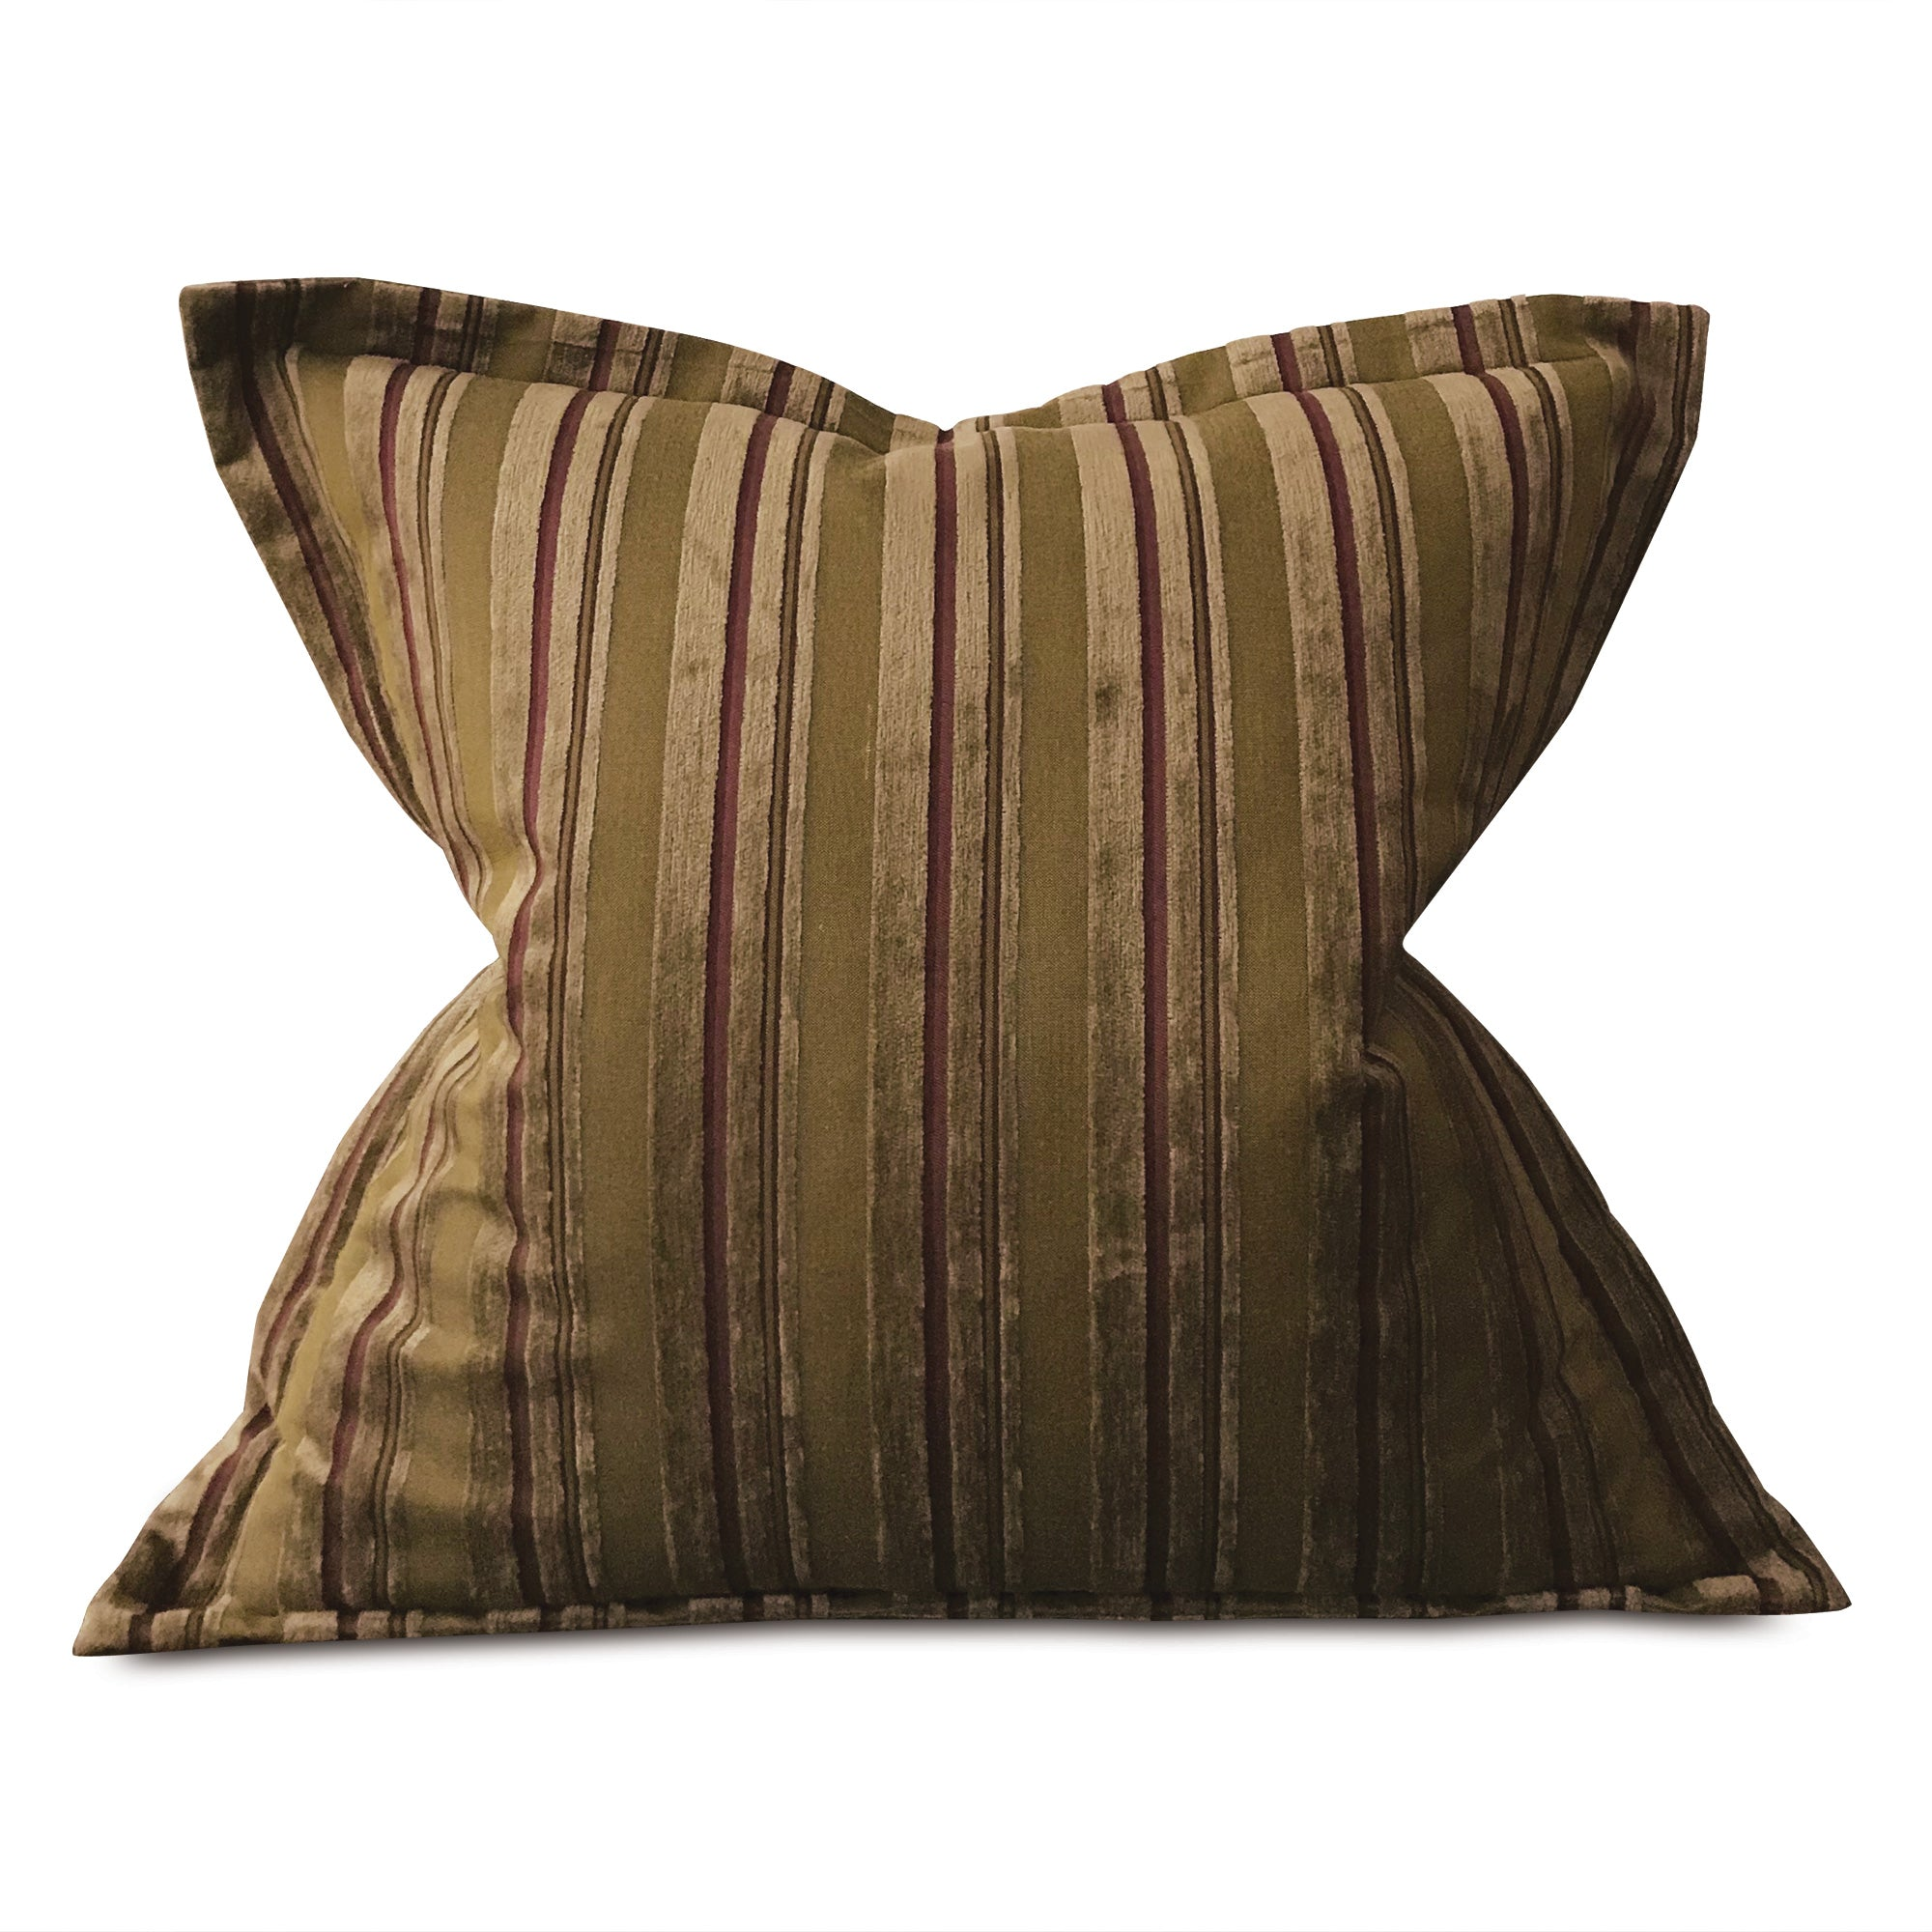 Picture of: Earth Tone Velvet Textured Woven Striped Oversized Decorative Pillow C Plankroad Home Outlet